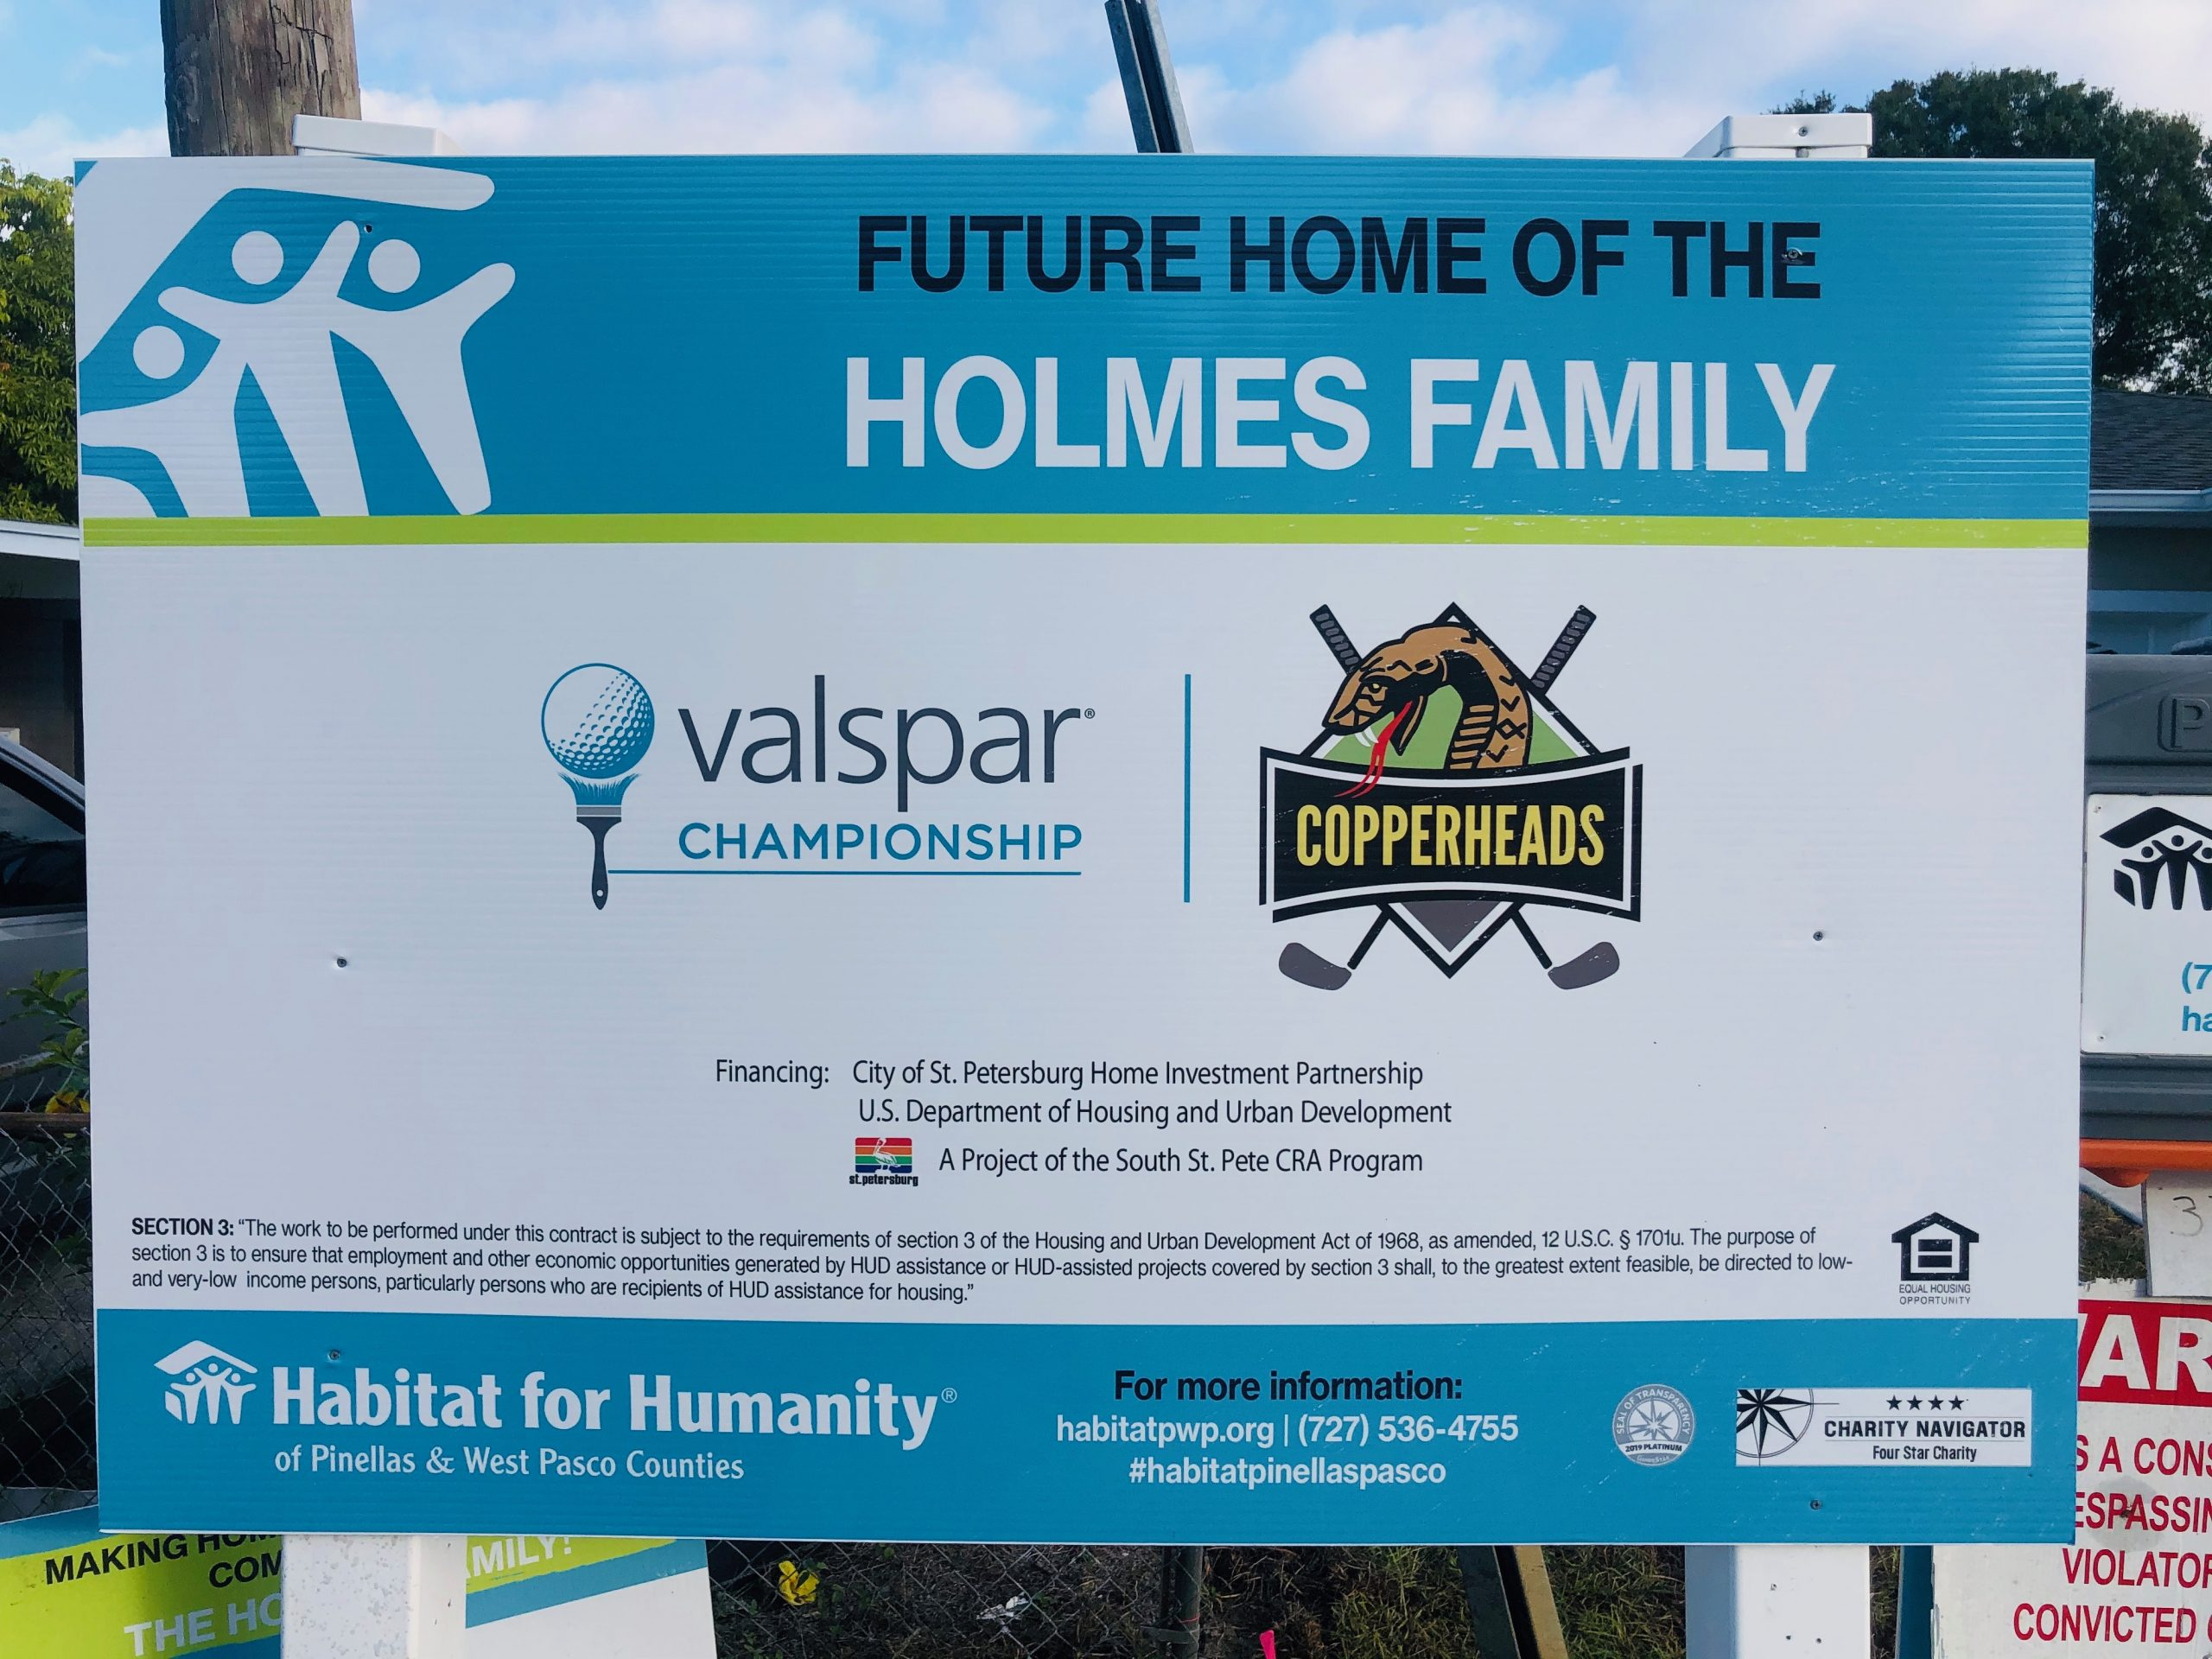 Valspar Championship and Copperhead Charities, Nominated as Philanthropic Service Organization of the Year, Sponsors Fifth Habitat for Humanity of Pinellas and West Pasco Counties Home